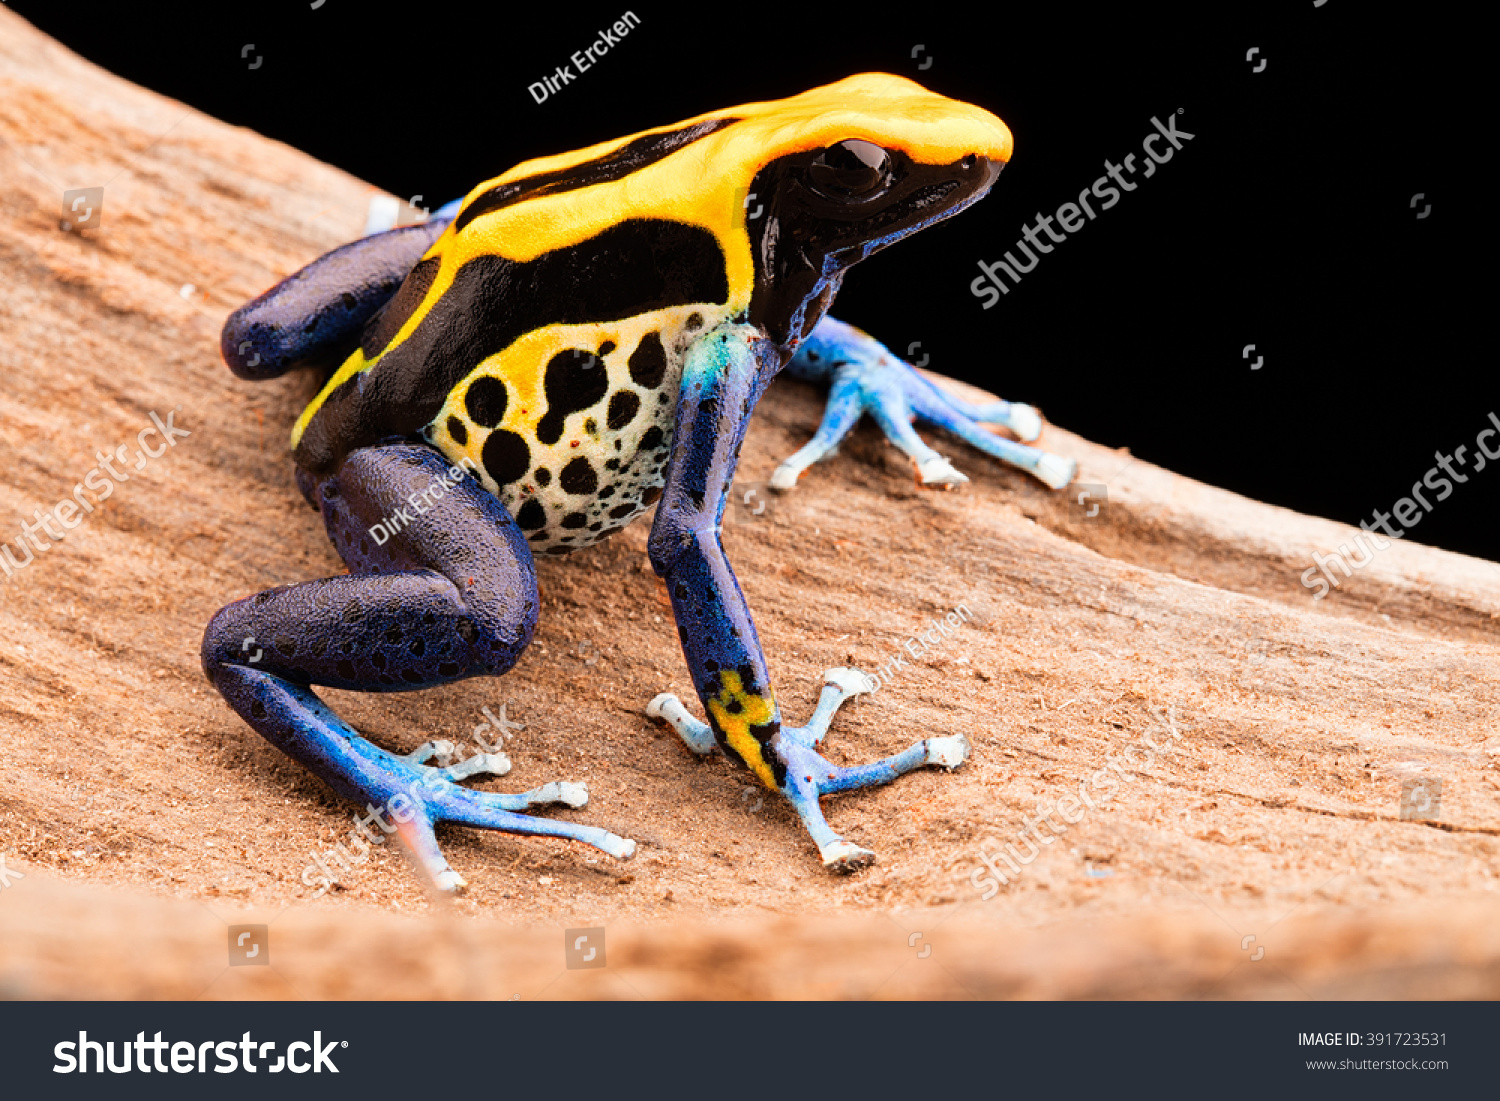 Poison Dart Frog Dendrobates Tinctorius Poisonous Stock Photo ...